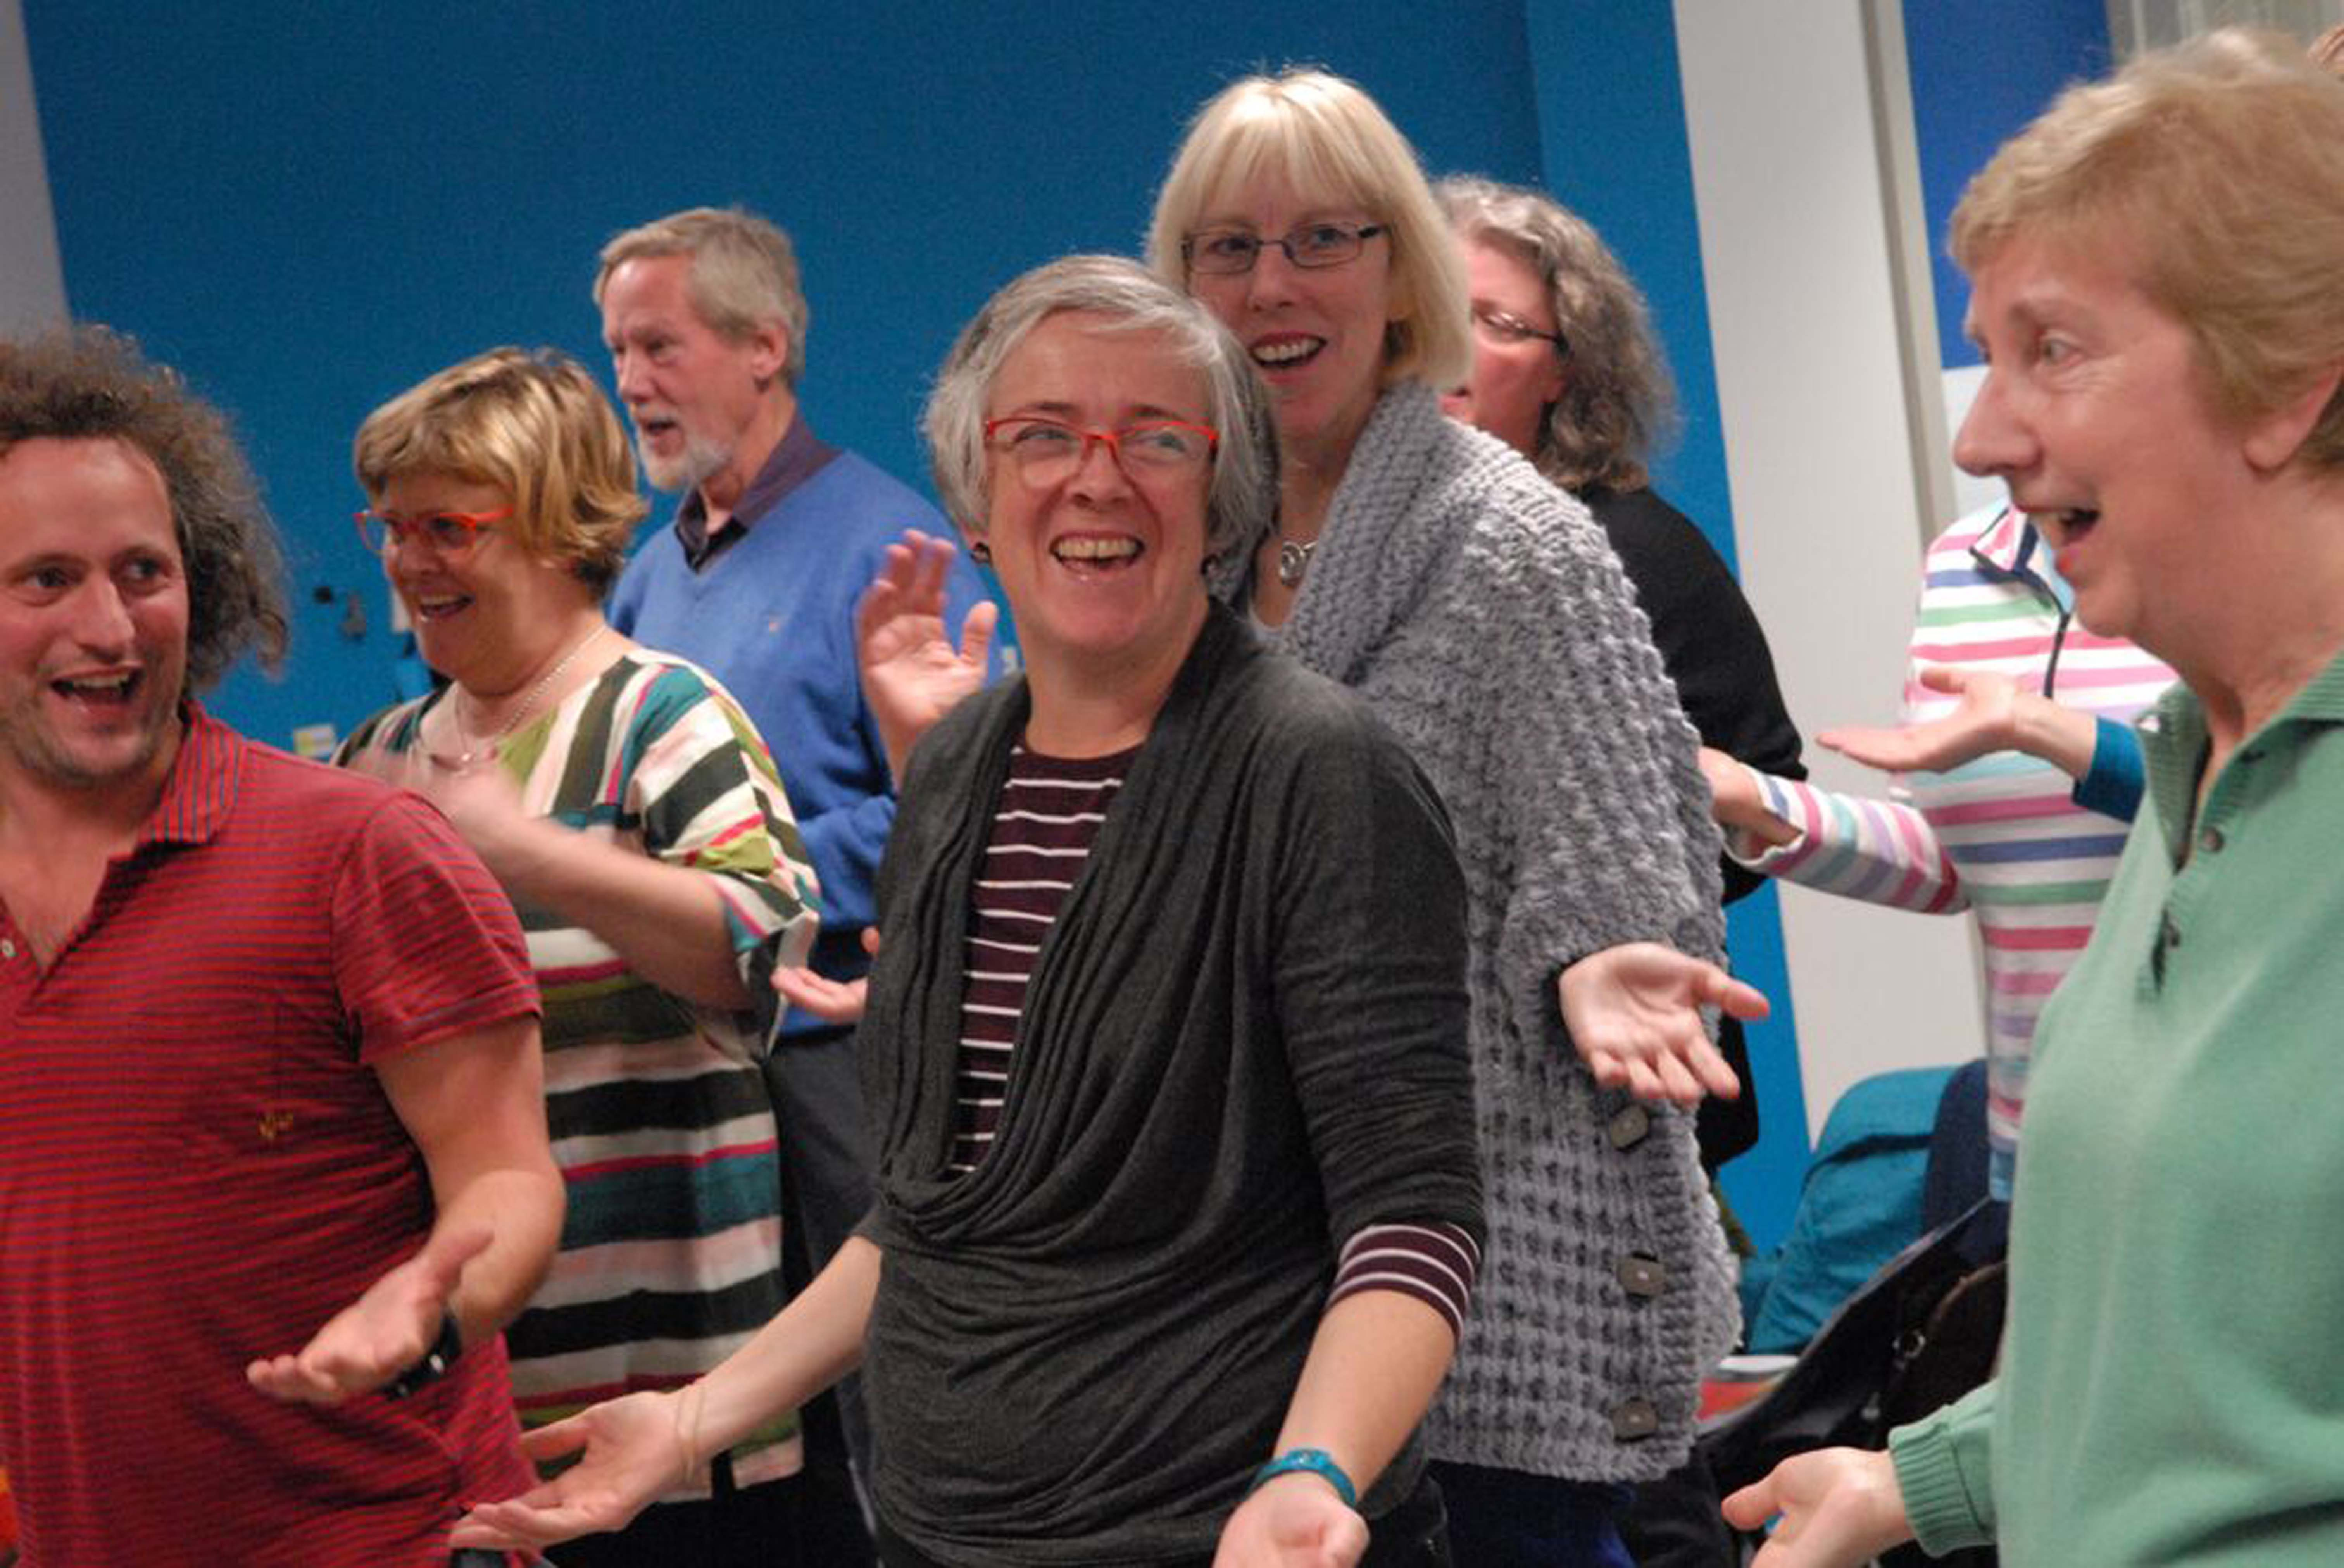 Photo credit Sheila Masson Rehearsing with The Newhaven Community Choir at Victoria Primary School